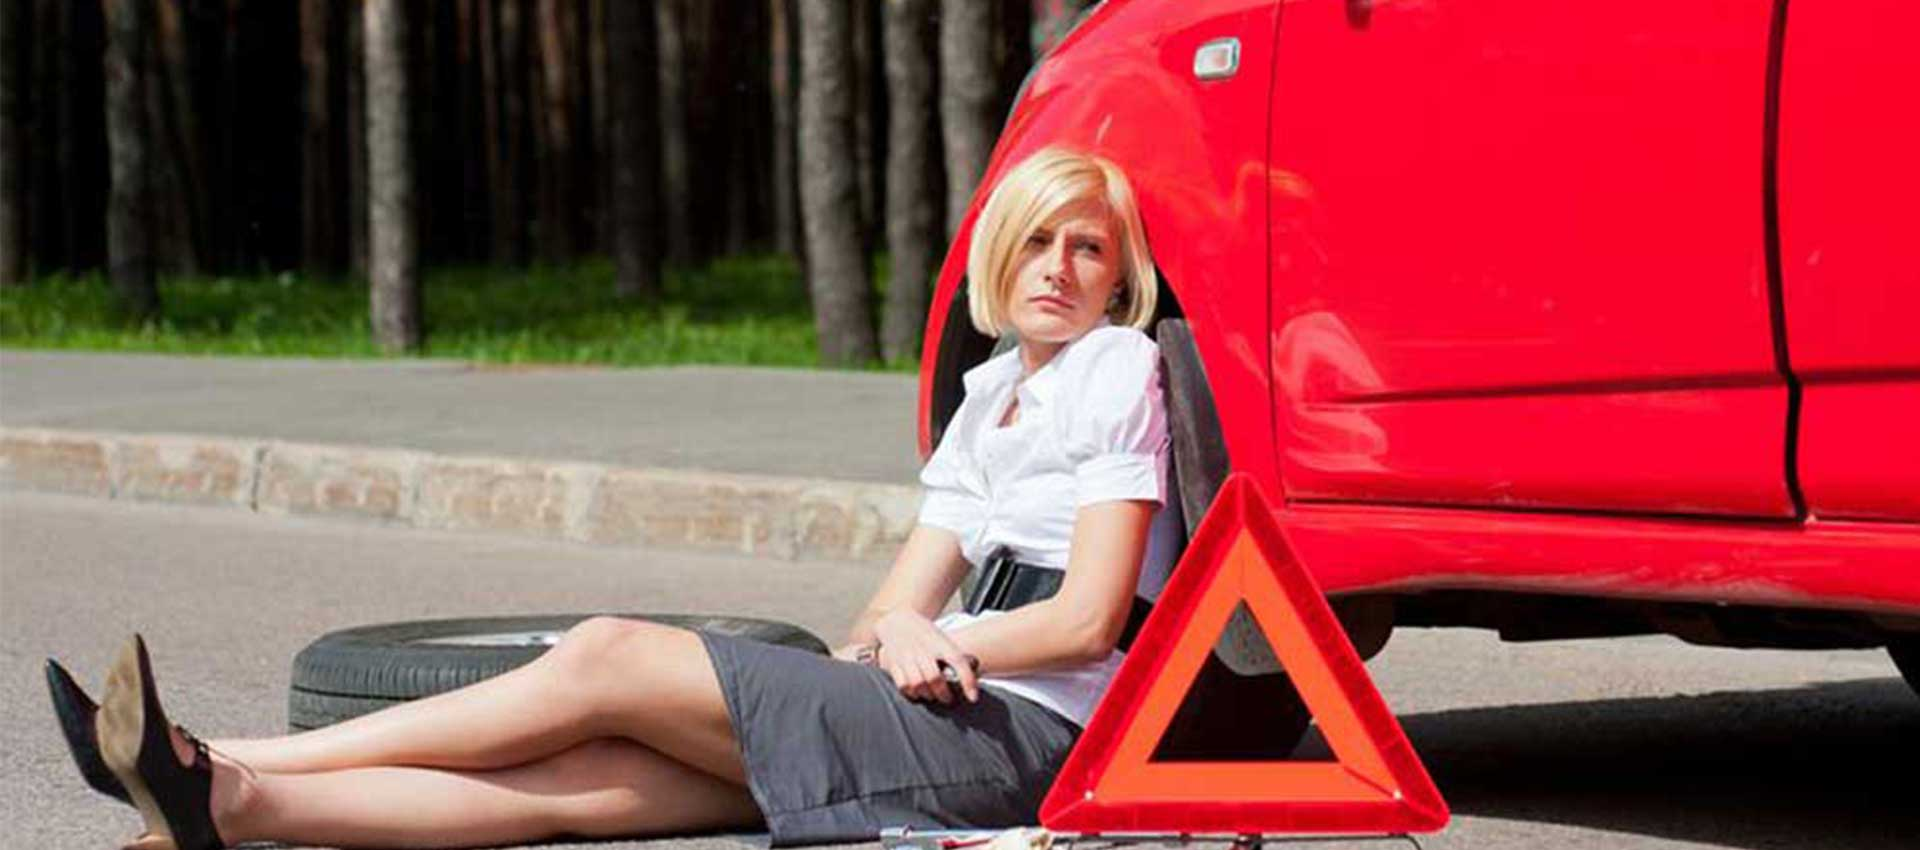 Woman sitting next to a red car.